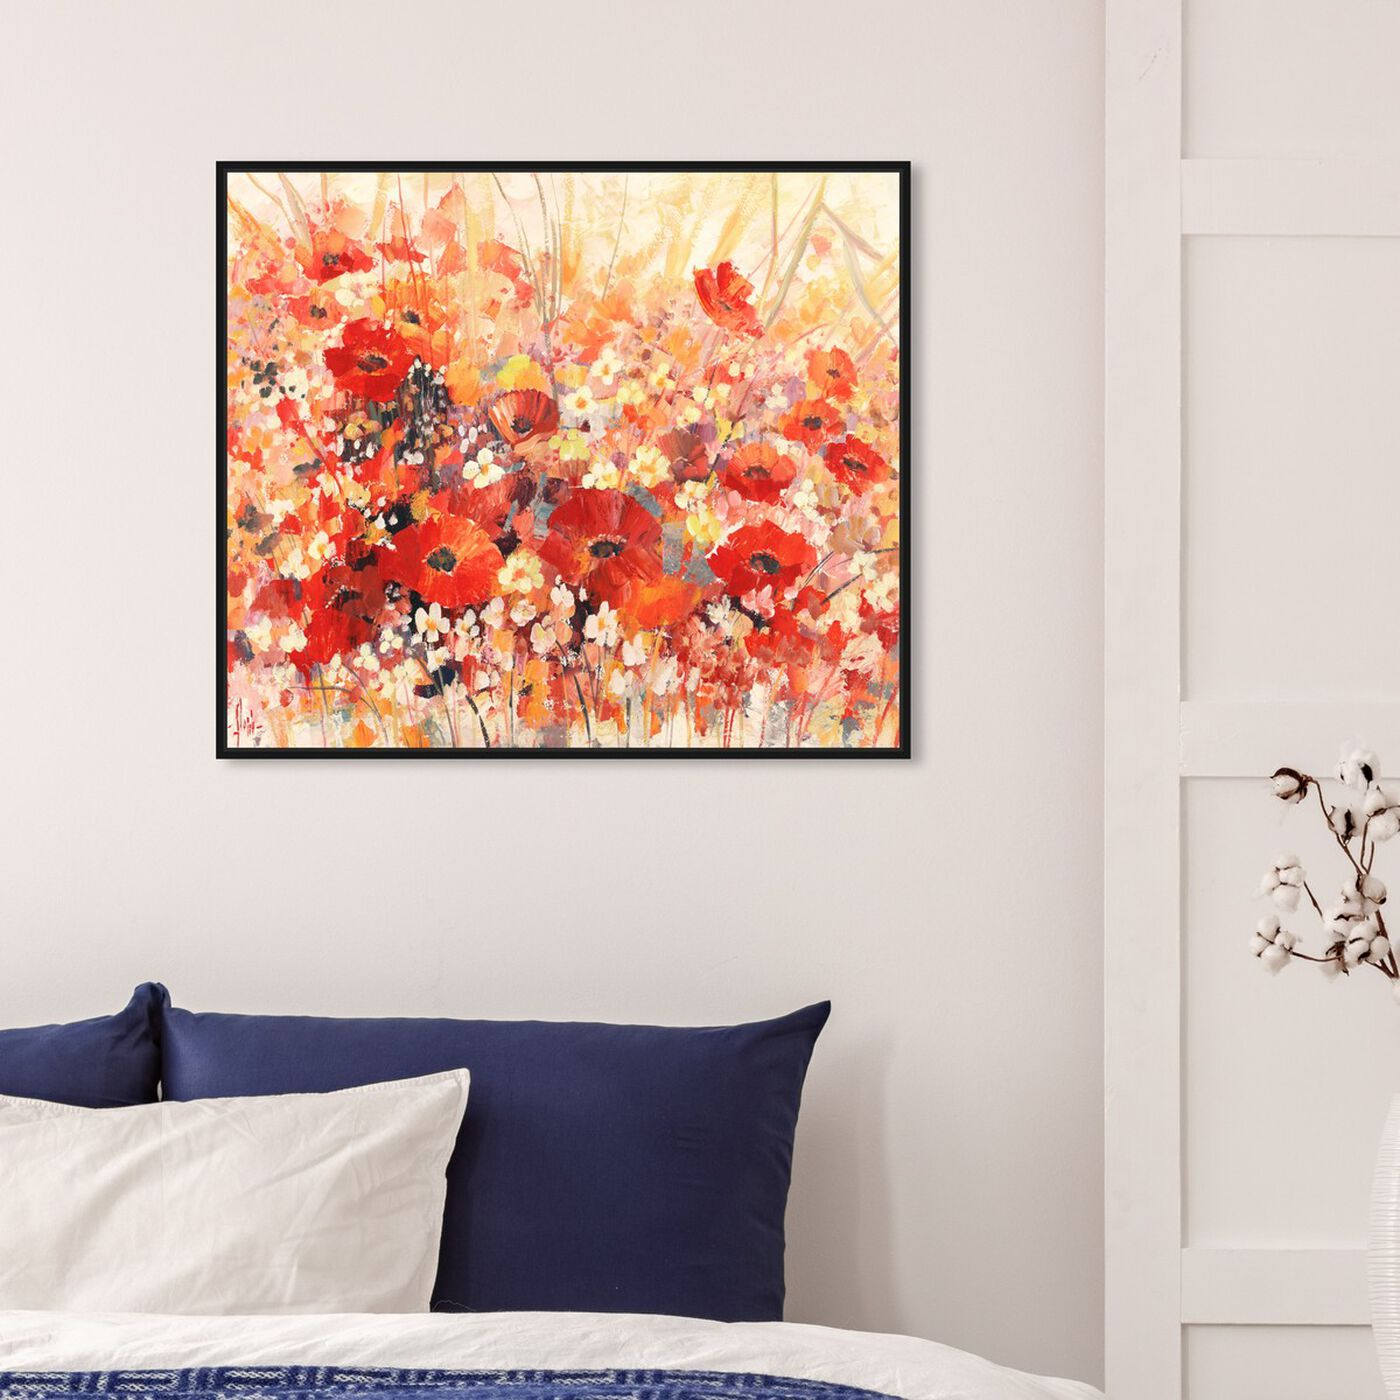 Hanging view of Sai - Red Floral 3LR1777 featuring floral and botanical and gardens art.